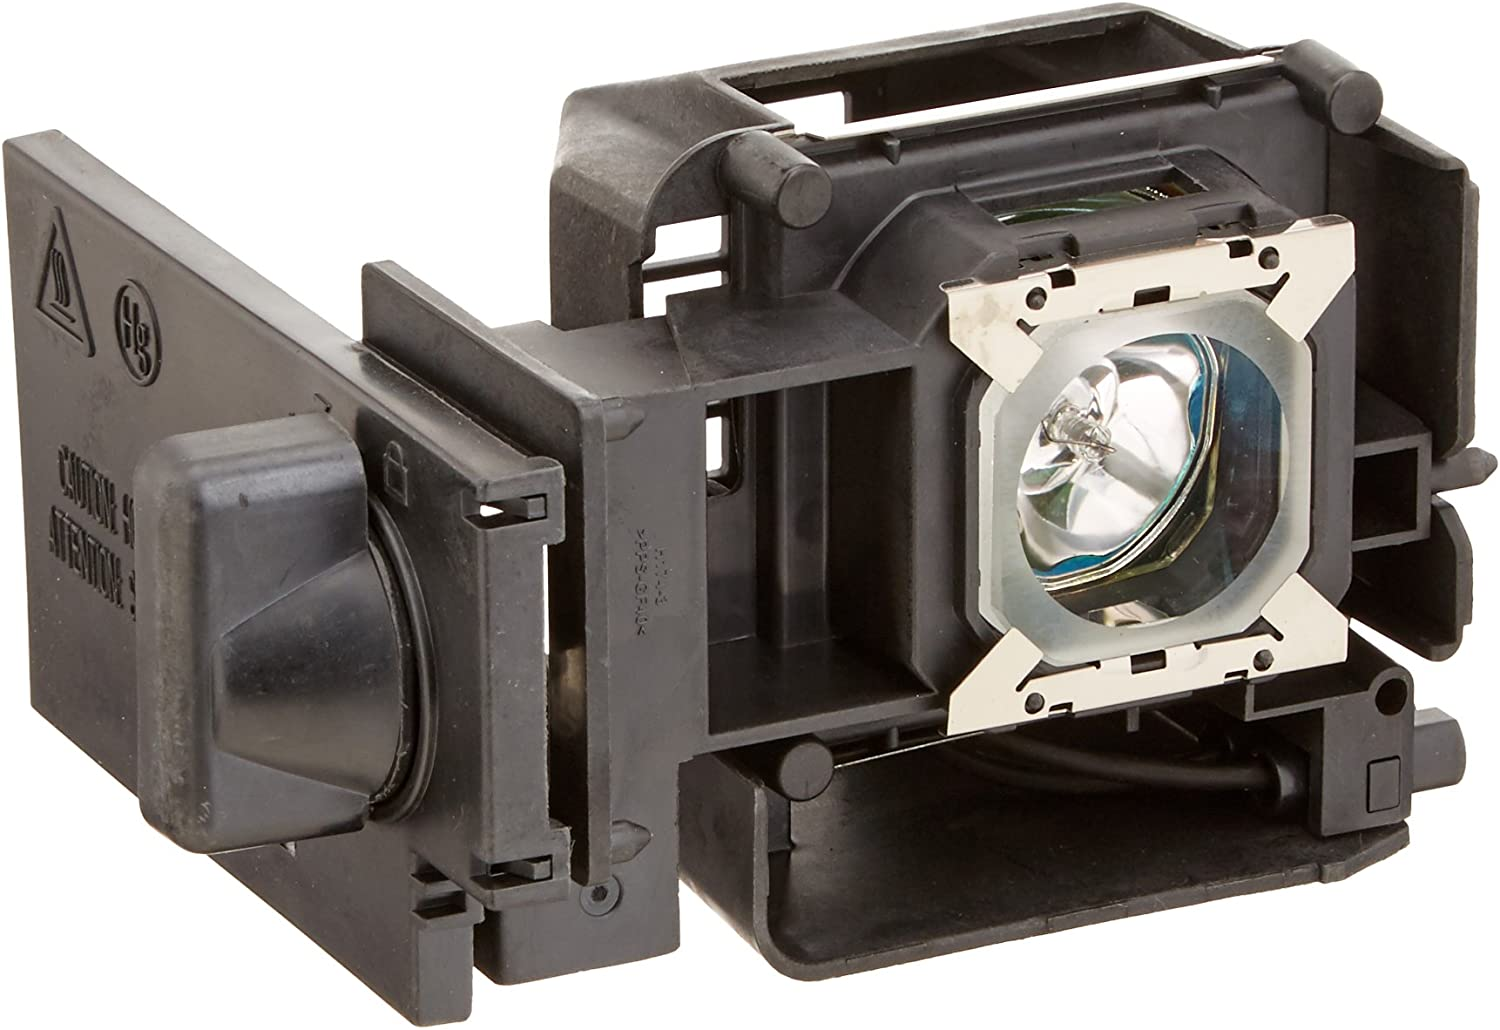 XpertMall Replacement Lamp Housing SANYO PDG-DHT100L Philips Bulb Inside